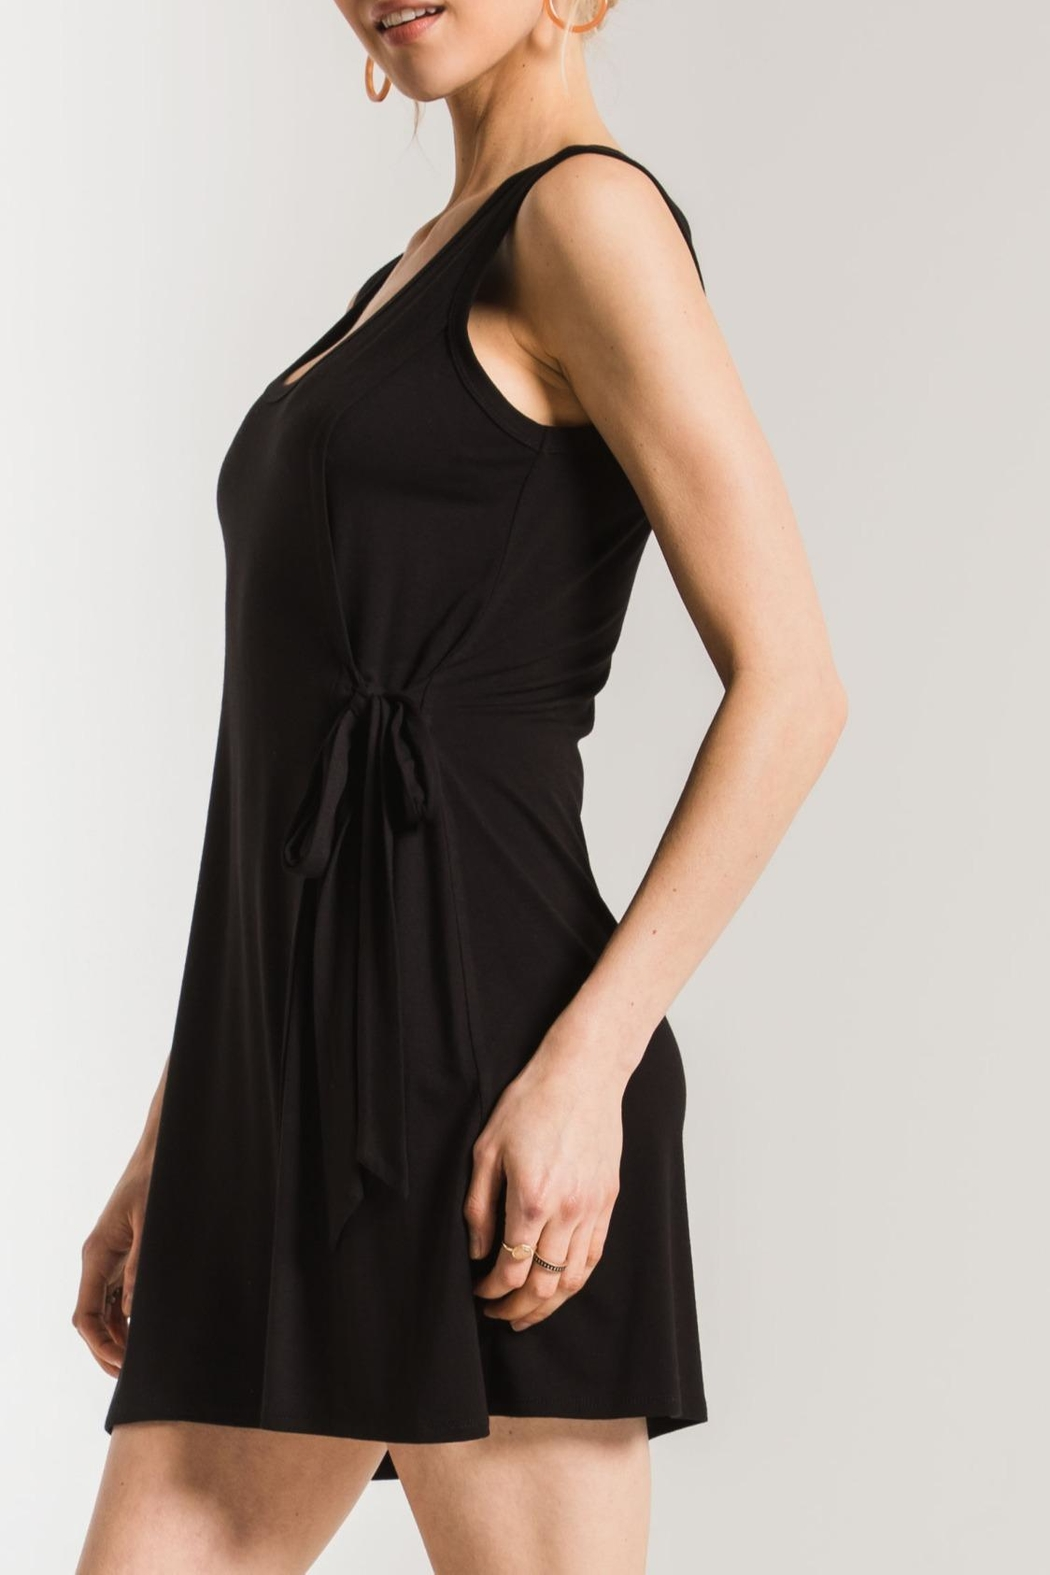 z supply The Side Tie Dress - Side Cropped Image